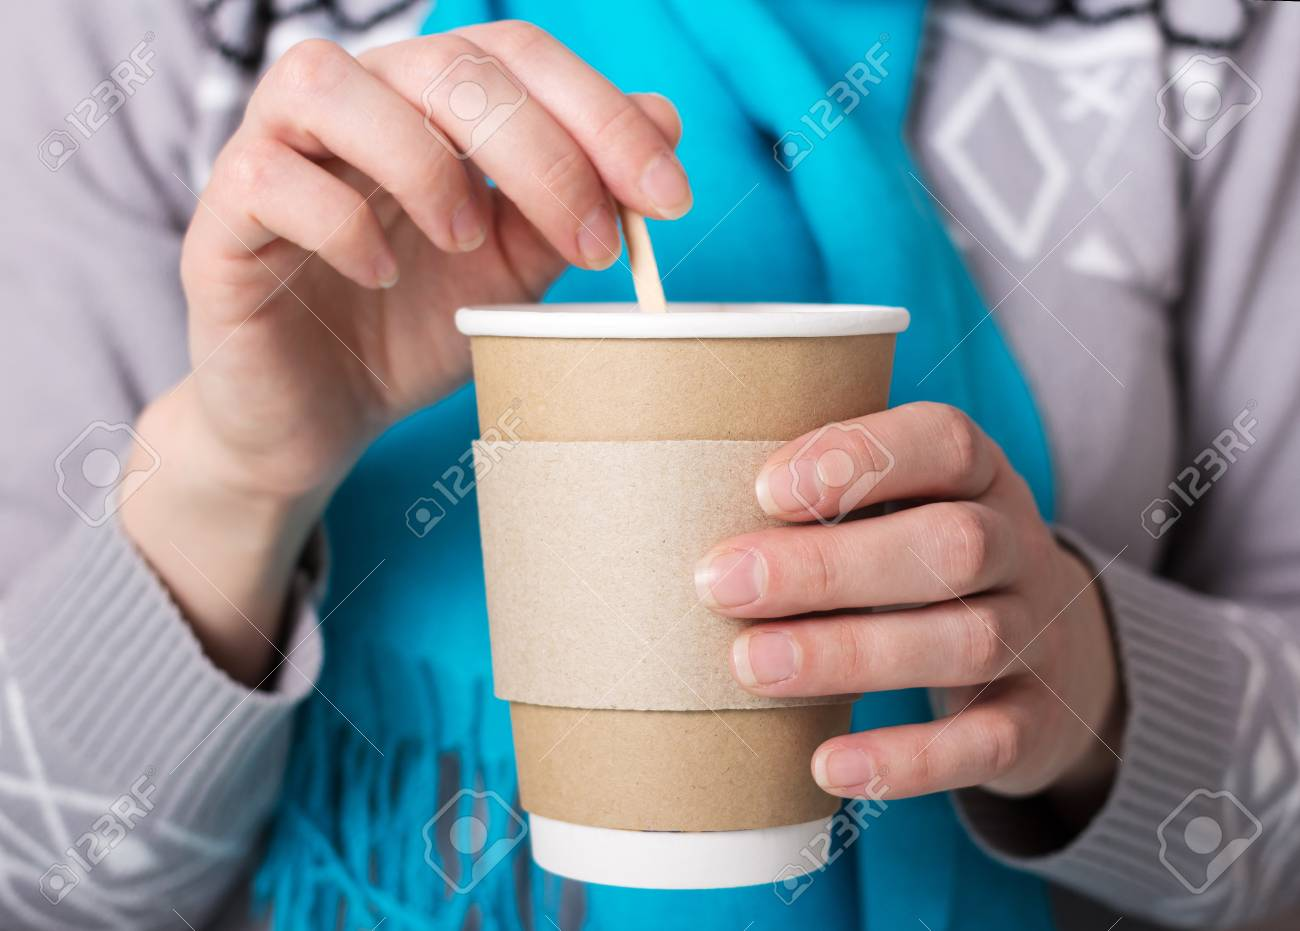 Special Cup for hot coffee takeaway, in hands of woman - 103925239